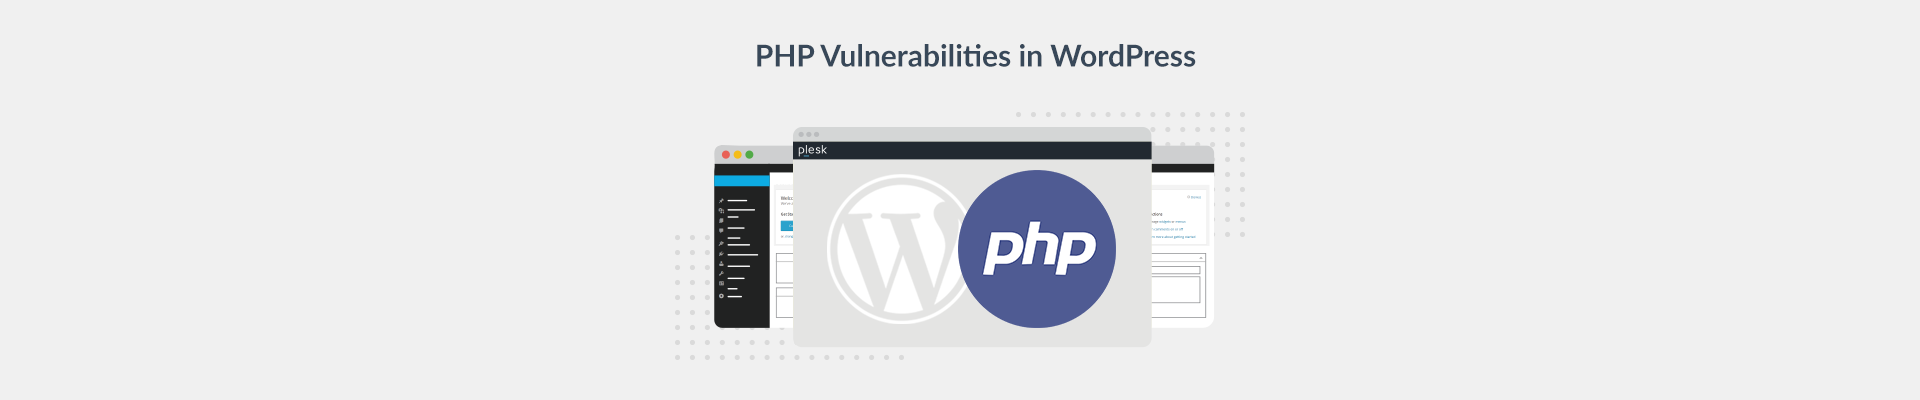 WordPress PHP vulnerabilities Plesk